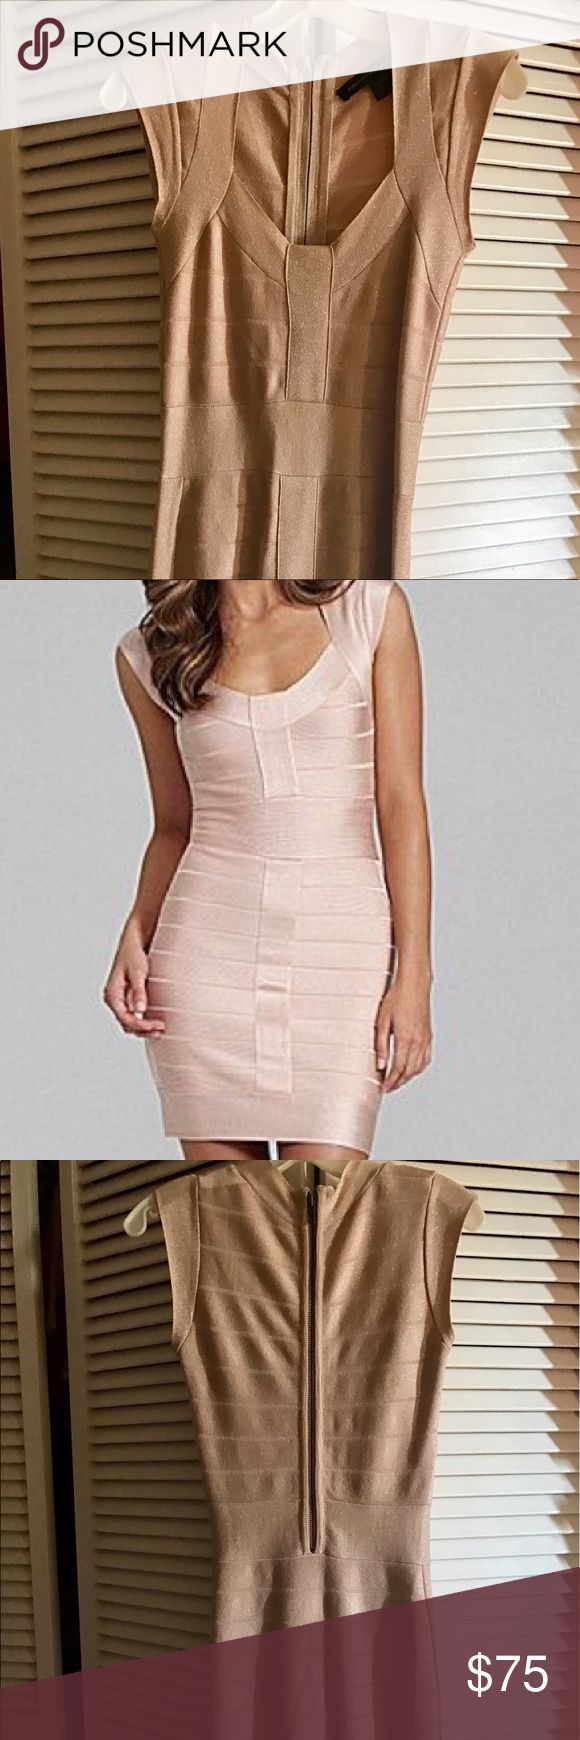 French Connection Pink & Gold Bandage Dress Size 0 The perfect outfit for a night out is this French Connection Pink, Gold and Nude shimmer bandage dress that has only been worn once. Dress it up or dress it down, it's a look that's sure to be the best at the party! French Connection Dresses Strapless